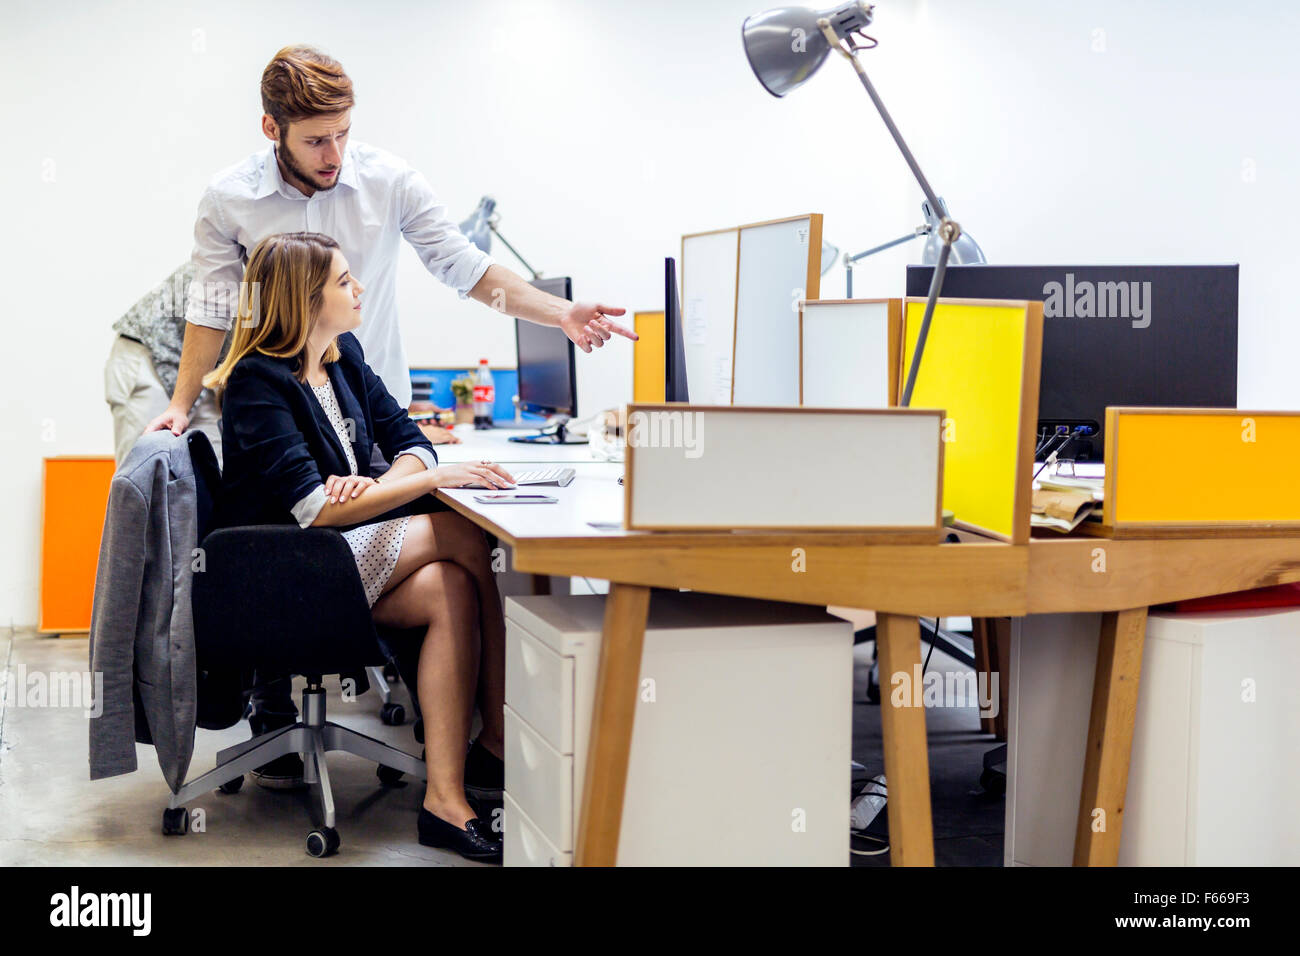 Business people in office working on a computer - Stock Image